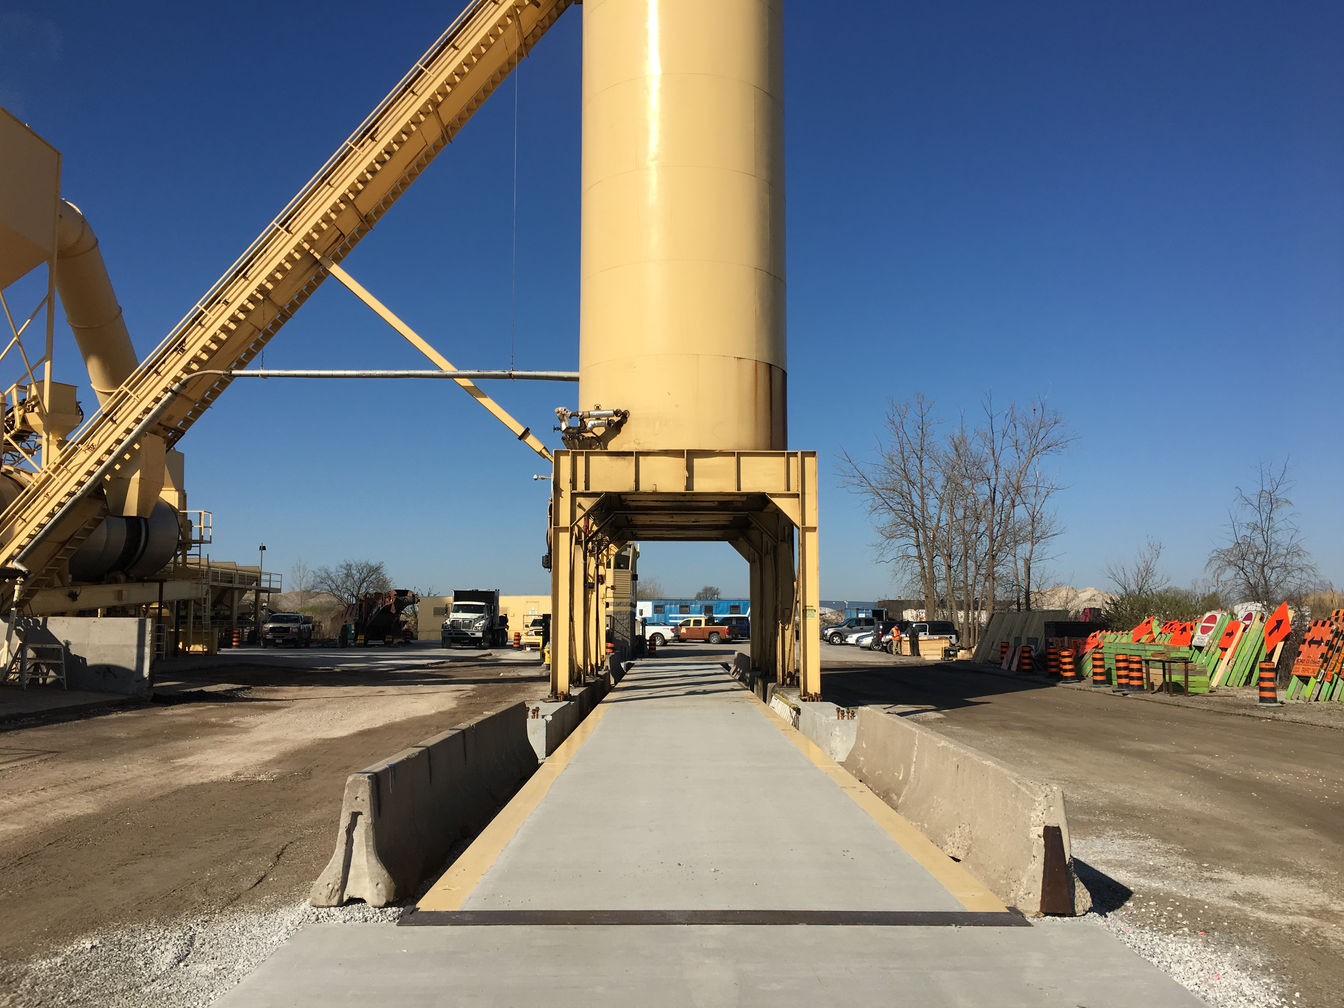 Mill-Am Corporation, Weigh Scale Installation in Windsor, Ontario. Project photo.